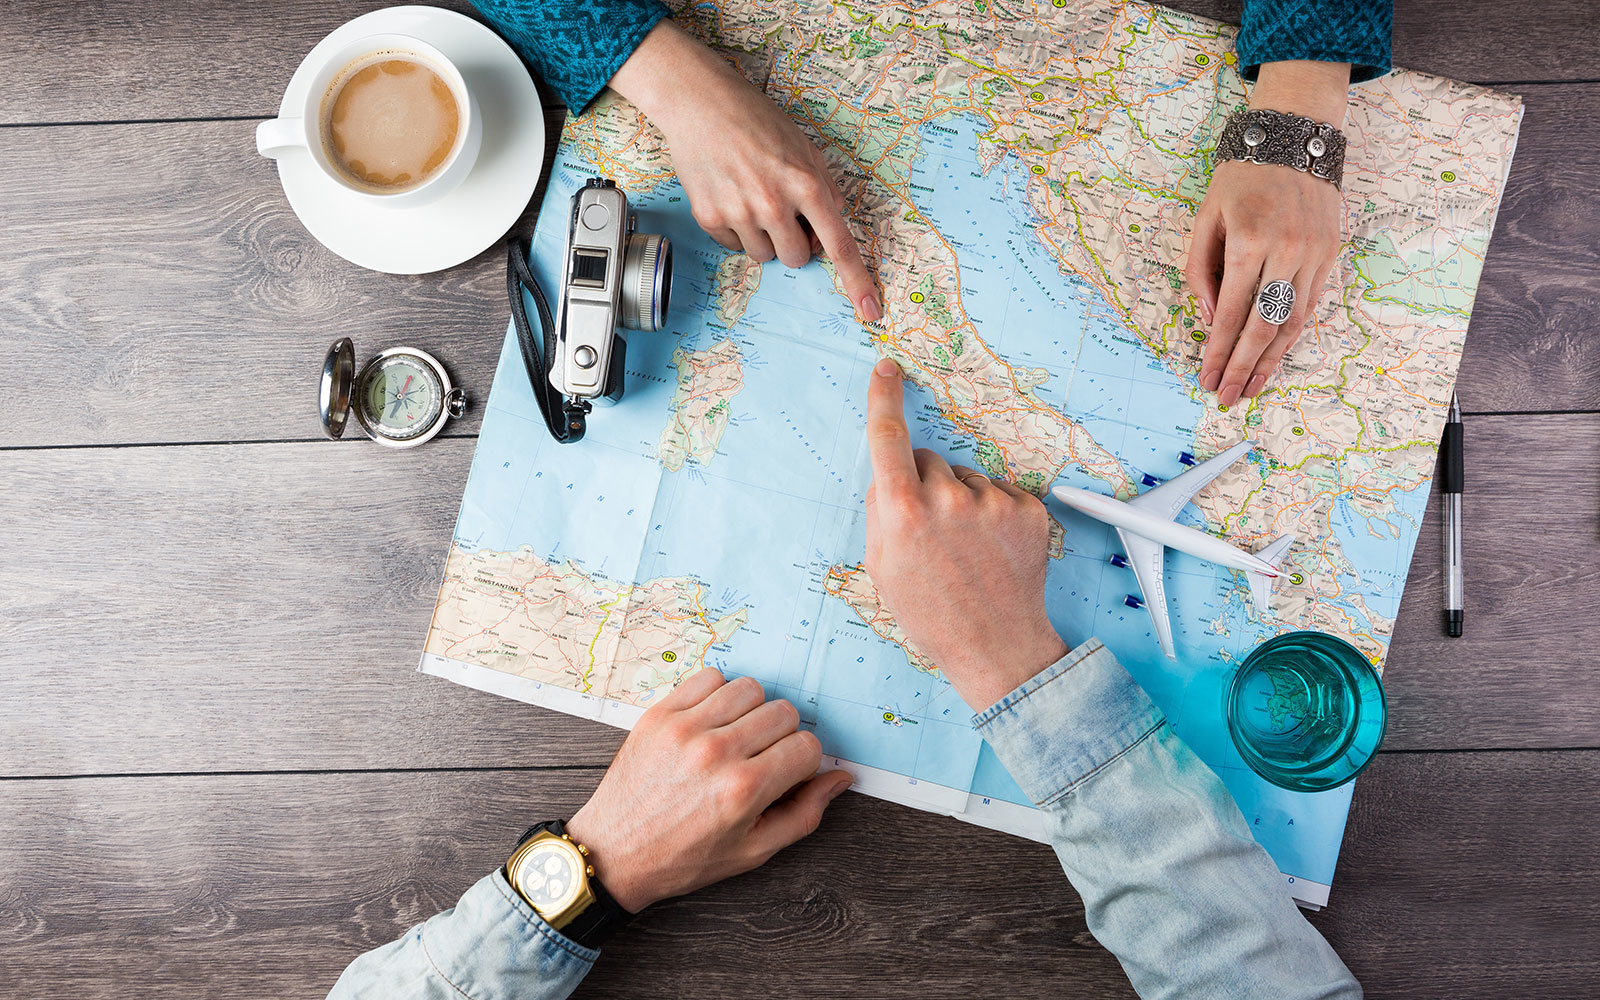 Do You Really Save Money by Planning a Trip Ahead of Time?